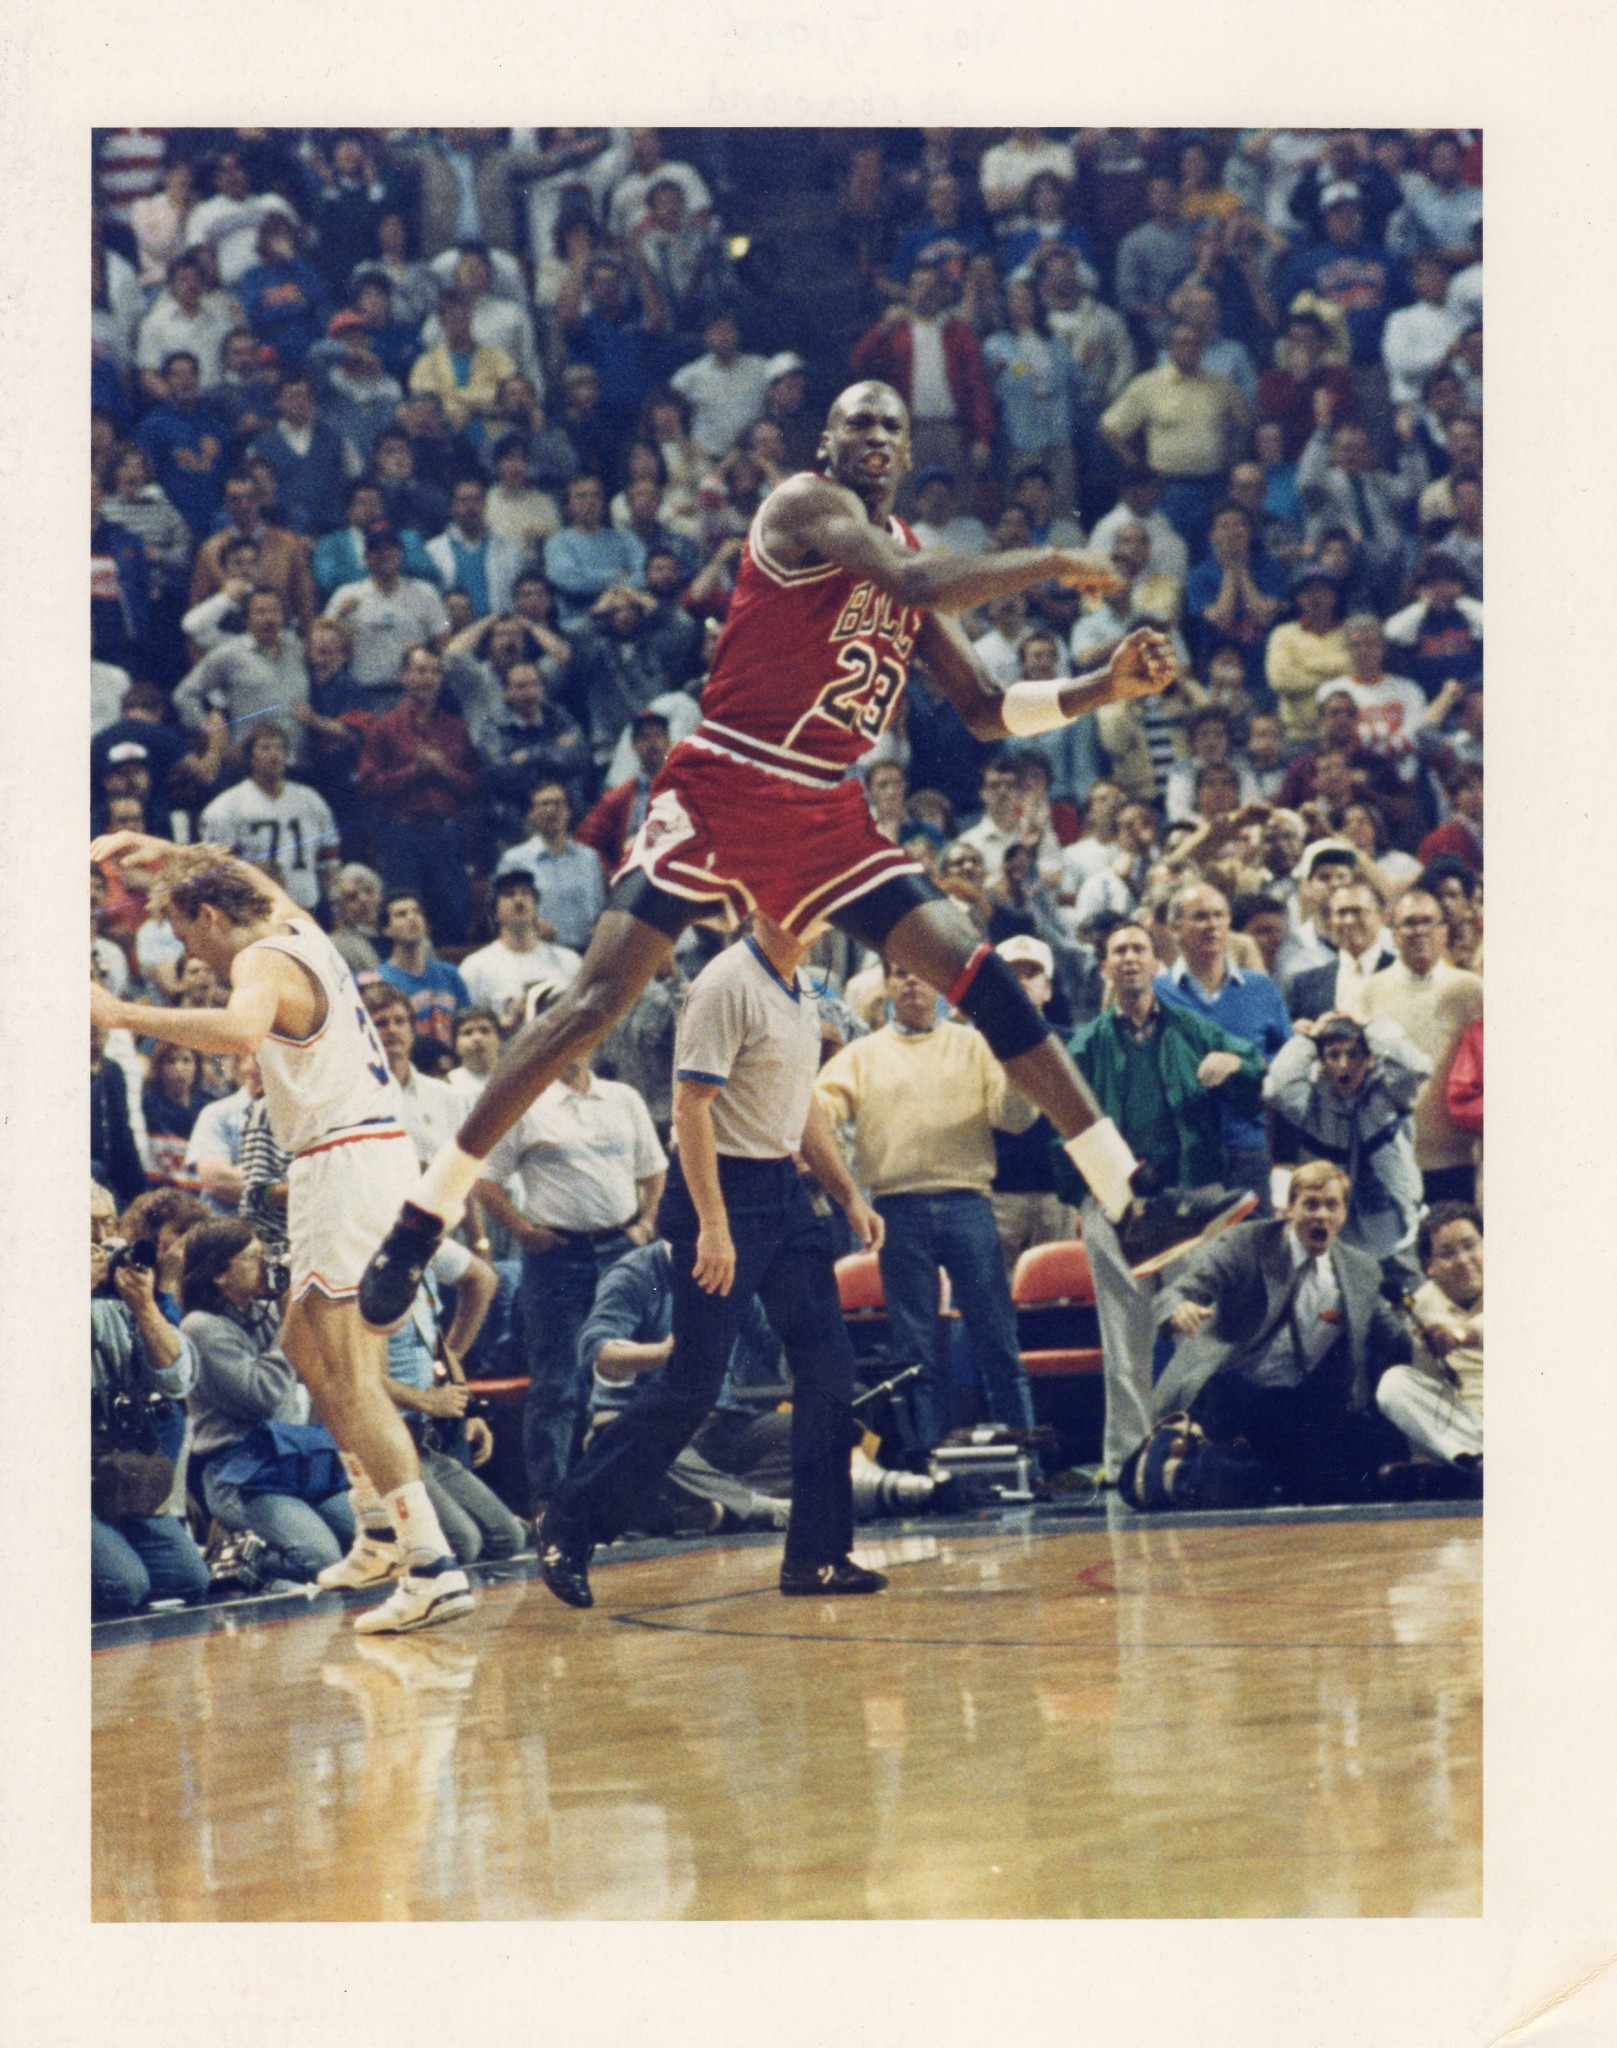 6D - 1989-05-07 - Michael Jordan - THE SHOT - 05 - Gm 5 ECQ v CLE - (BR-T)